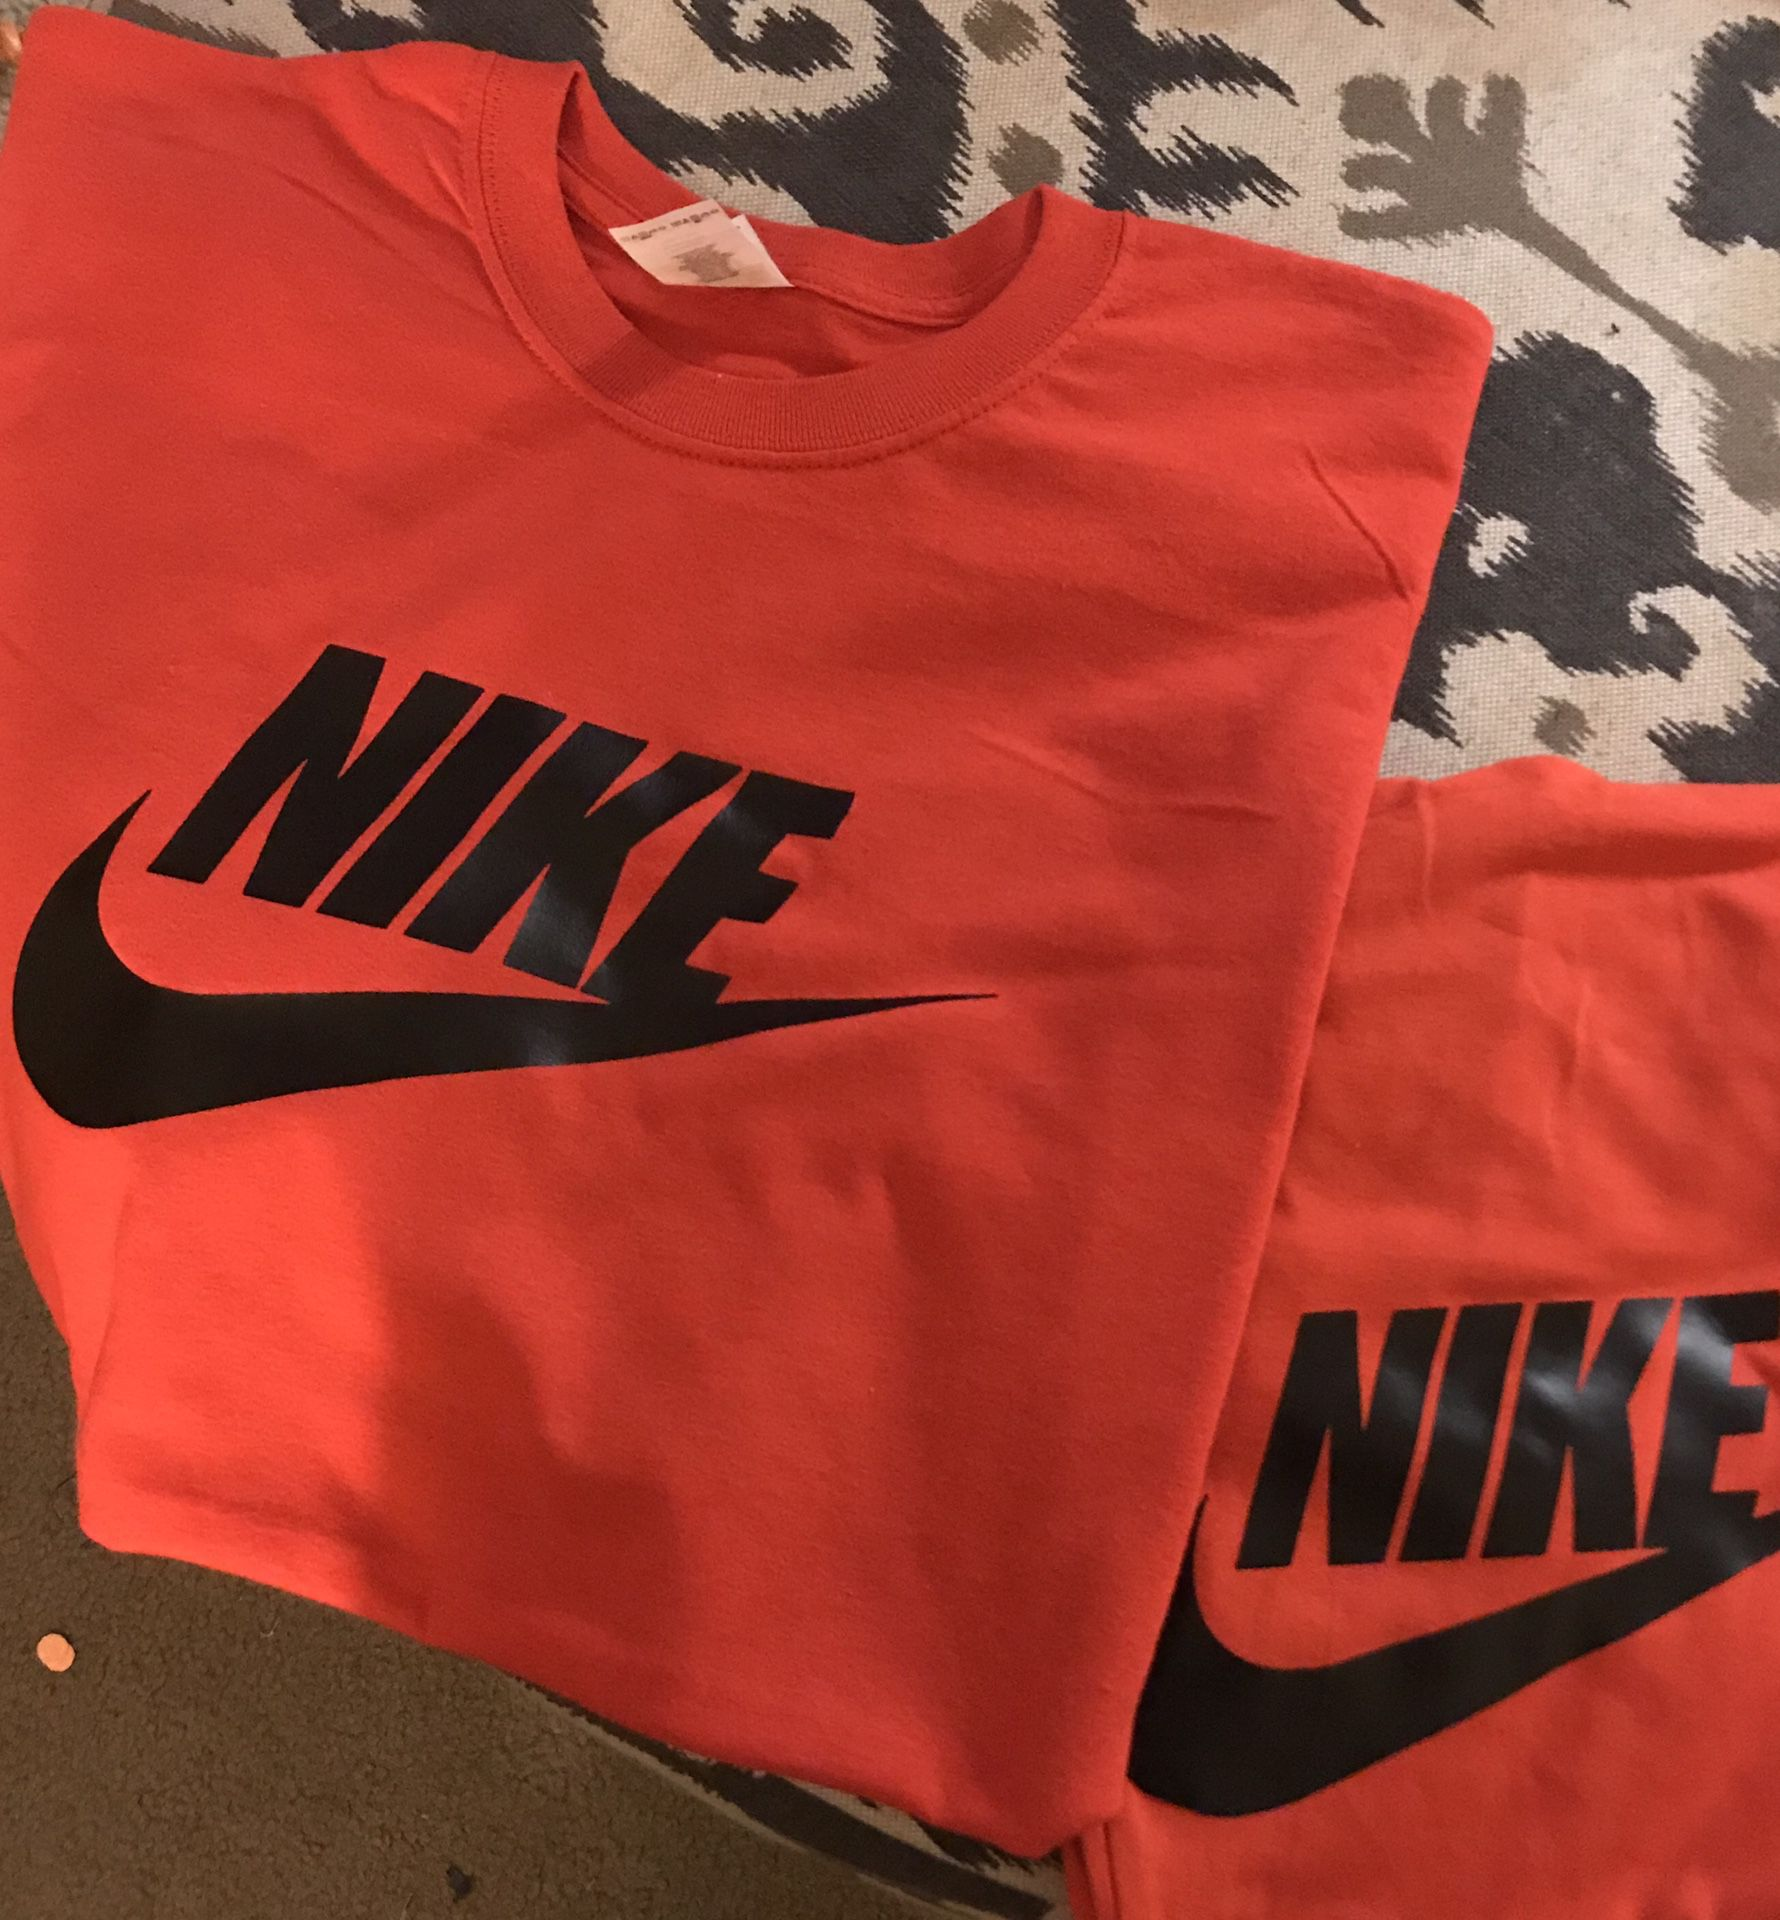 Custom Nike set. You pick you colors ladies full sets men shirts only. 25 dollars all colors